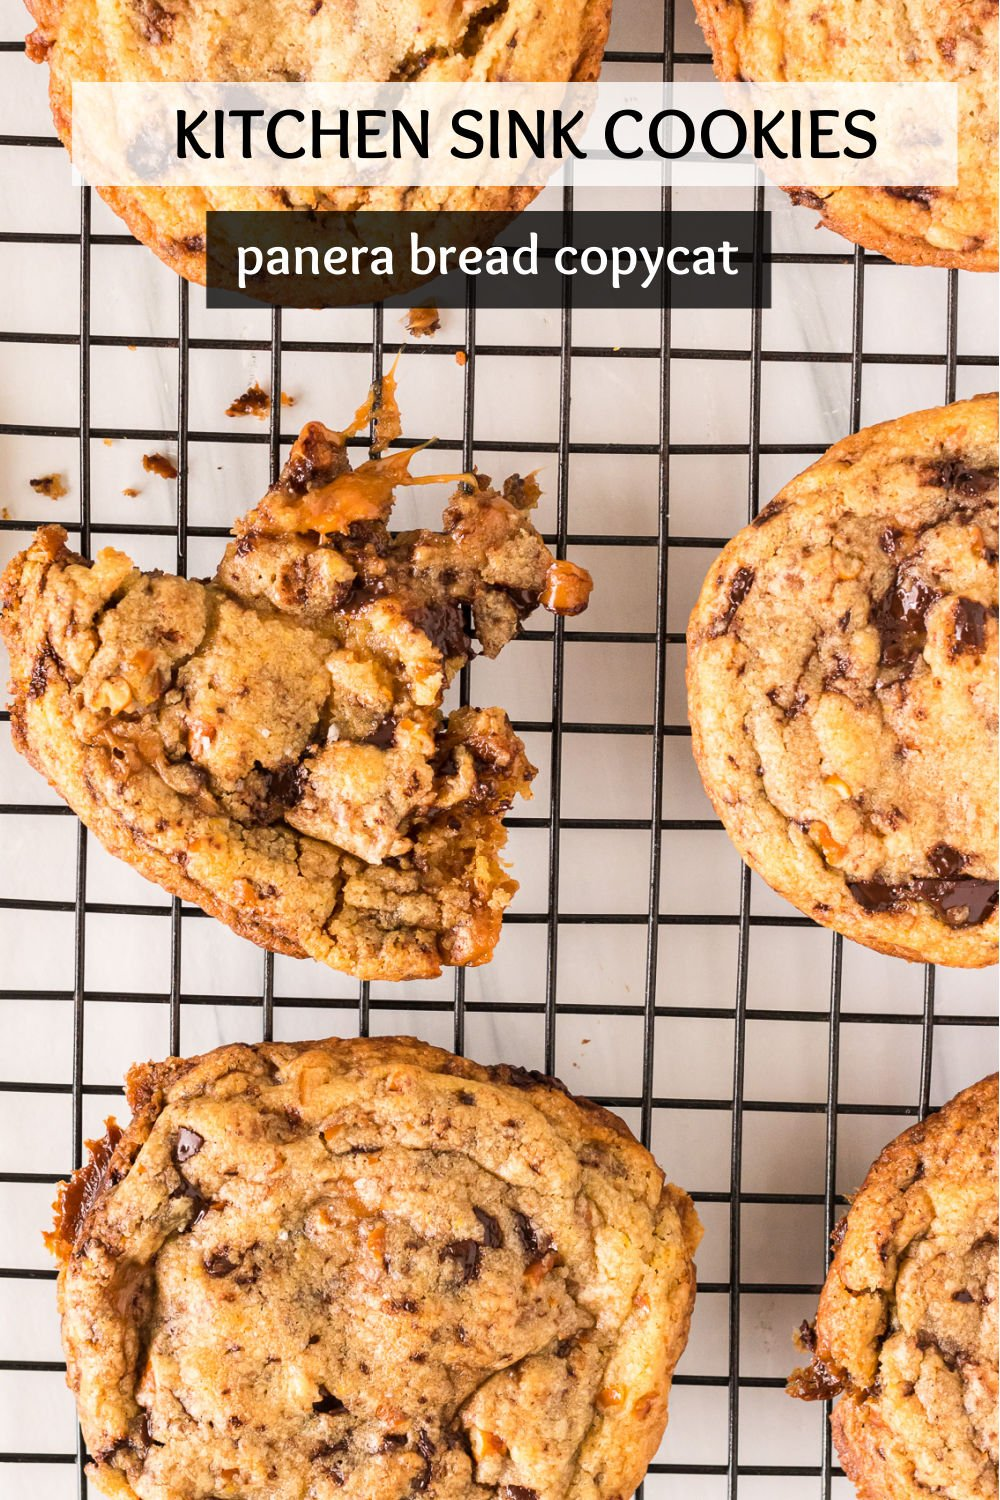 Filled with chocolate, caramel, and crushed pretzels, these Kitchen Sink Cookies are a Panera Bread copycat and the perfect blend of salty and sweet. One of these jumbo cookies is plenty to share, but you probably won't want to! | www.persnicketyplates.com